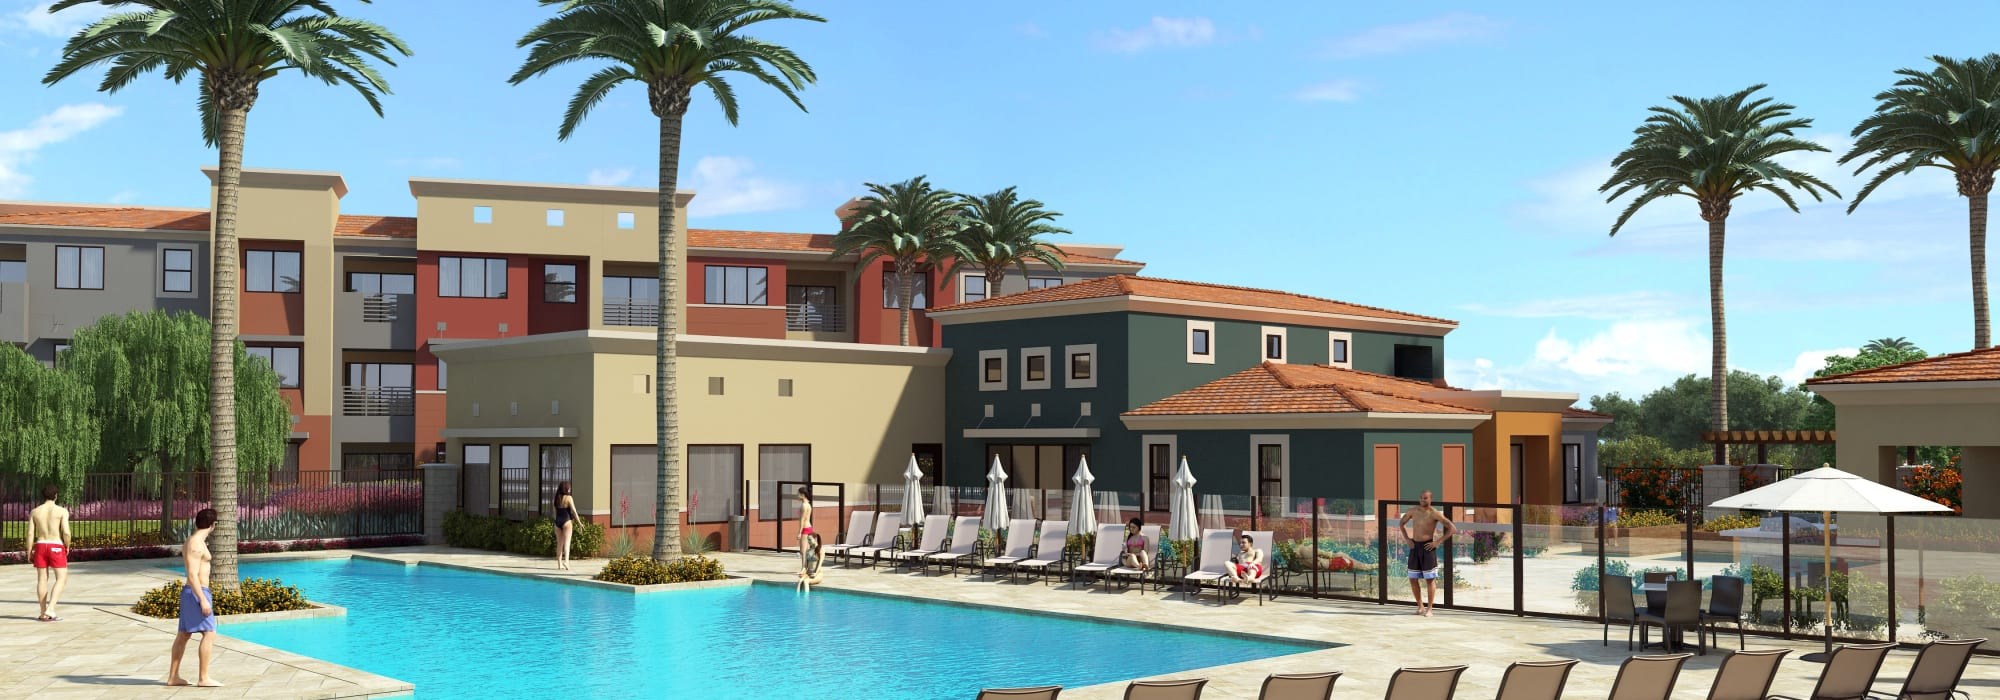 Spacious pool with sundeck and plenty of lounge chairs at Villa Vita Apartments in Peoria, Arizona